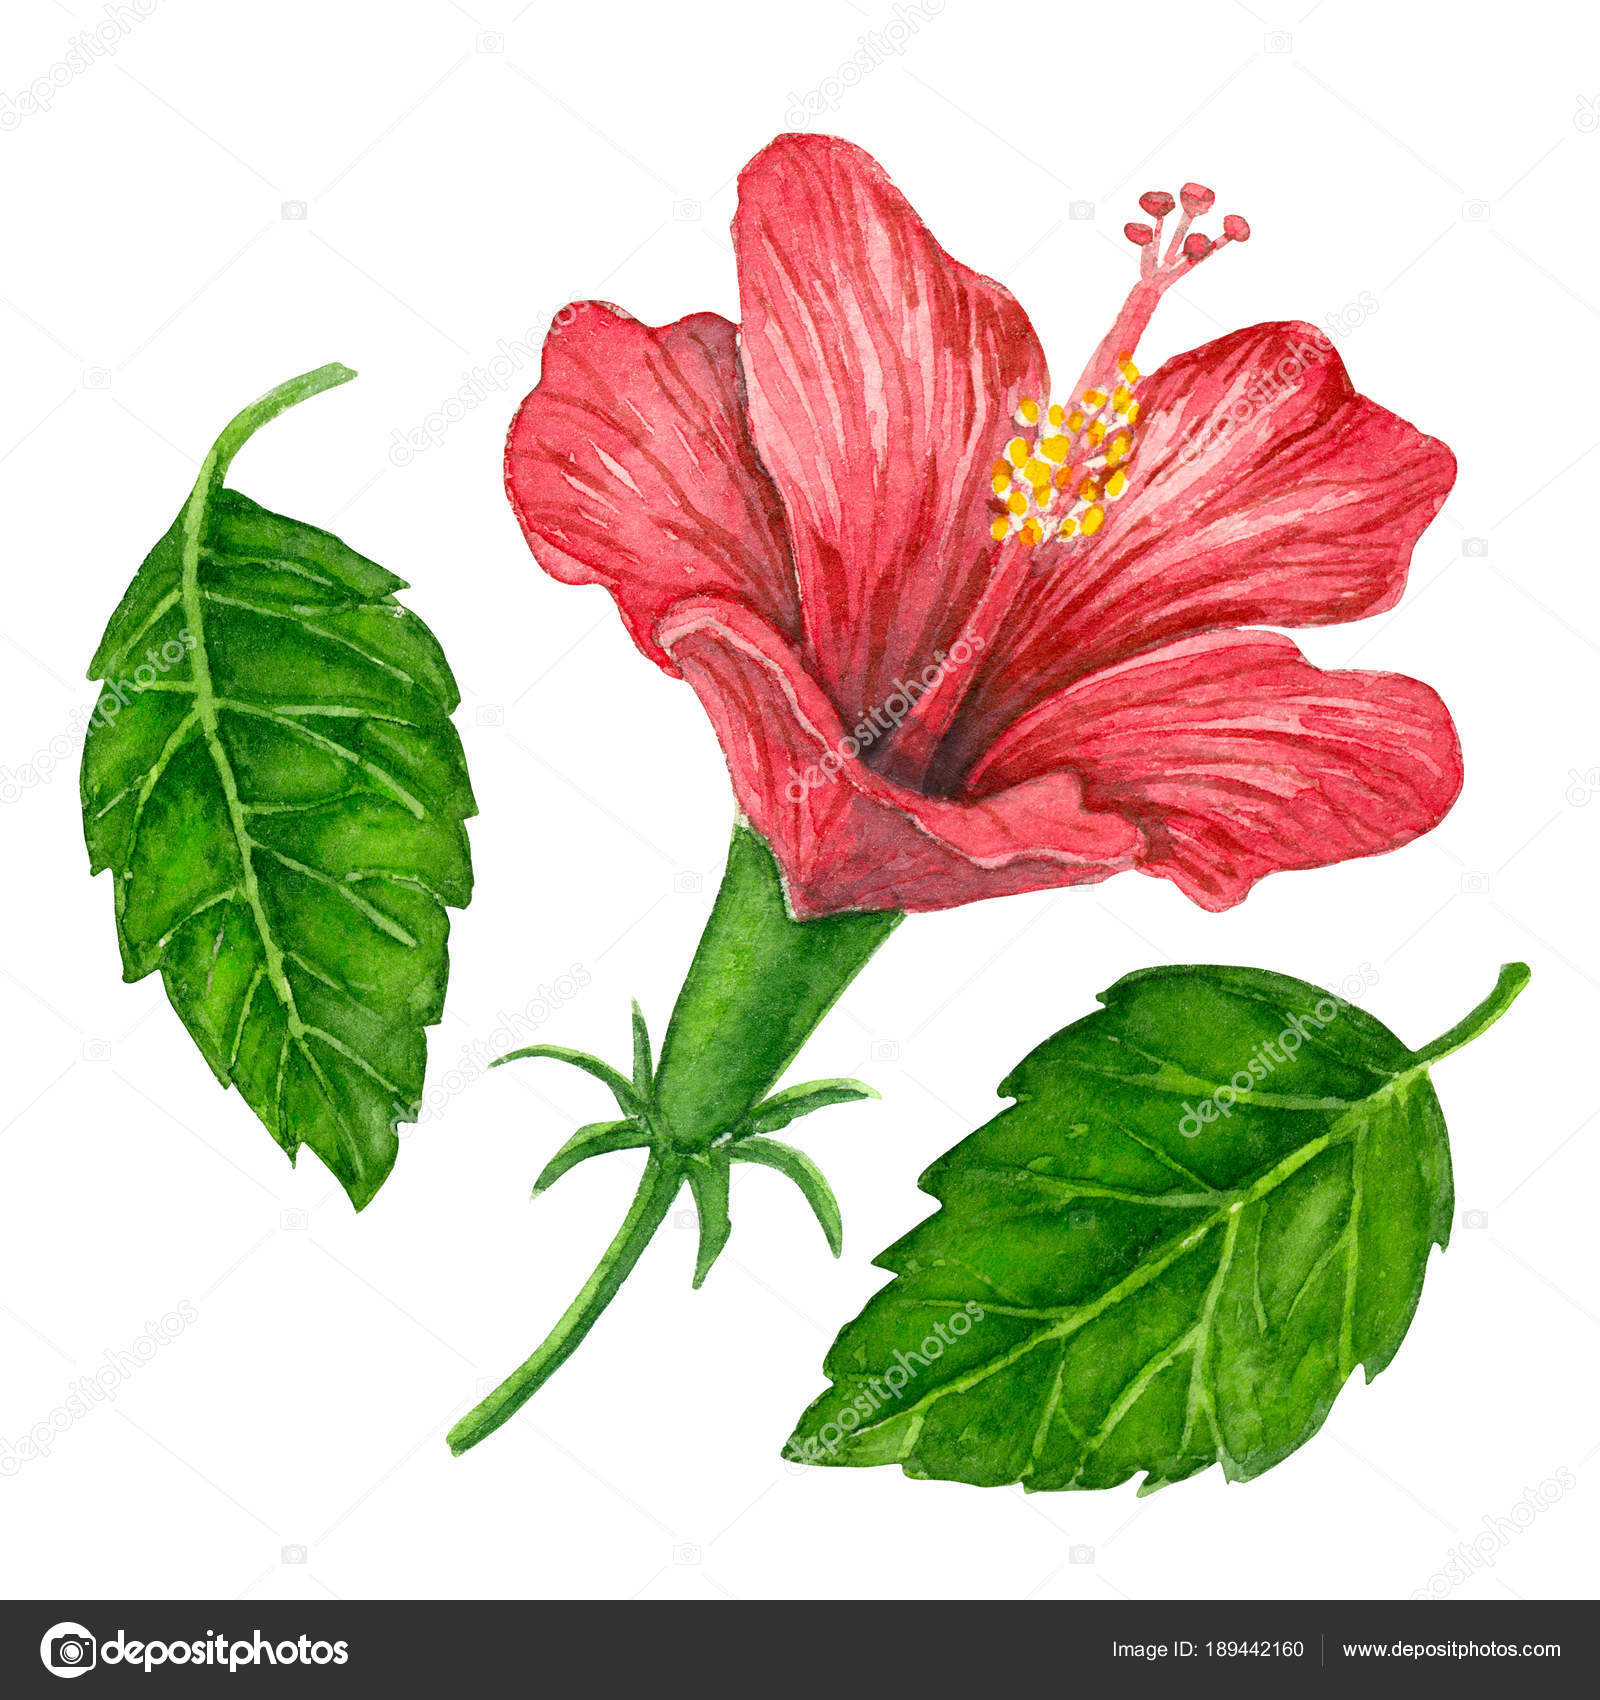 Watercolor hibiscus flower stock photo katerinamk 189442160 watercolor hibiscus flower stock photo izmirmasajfo